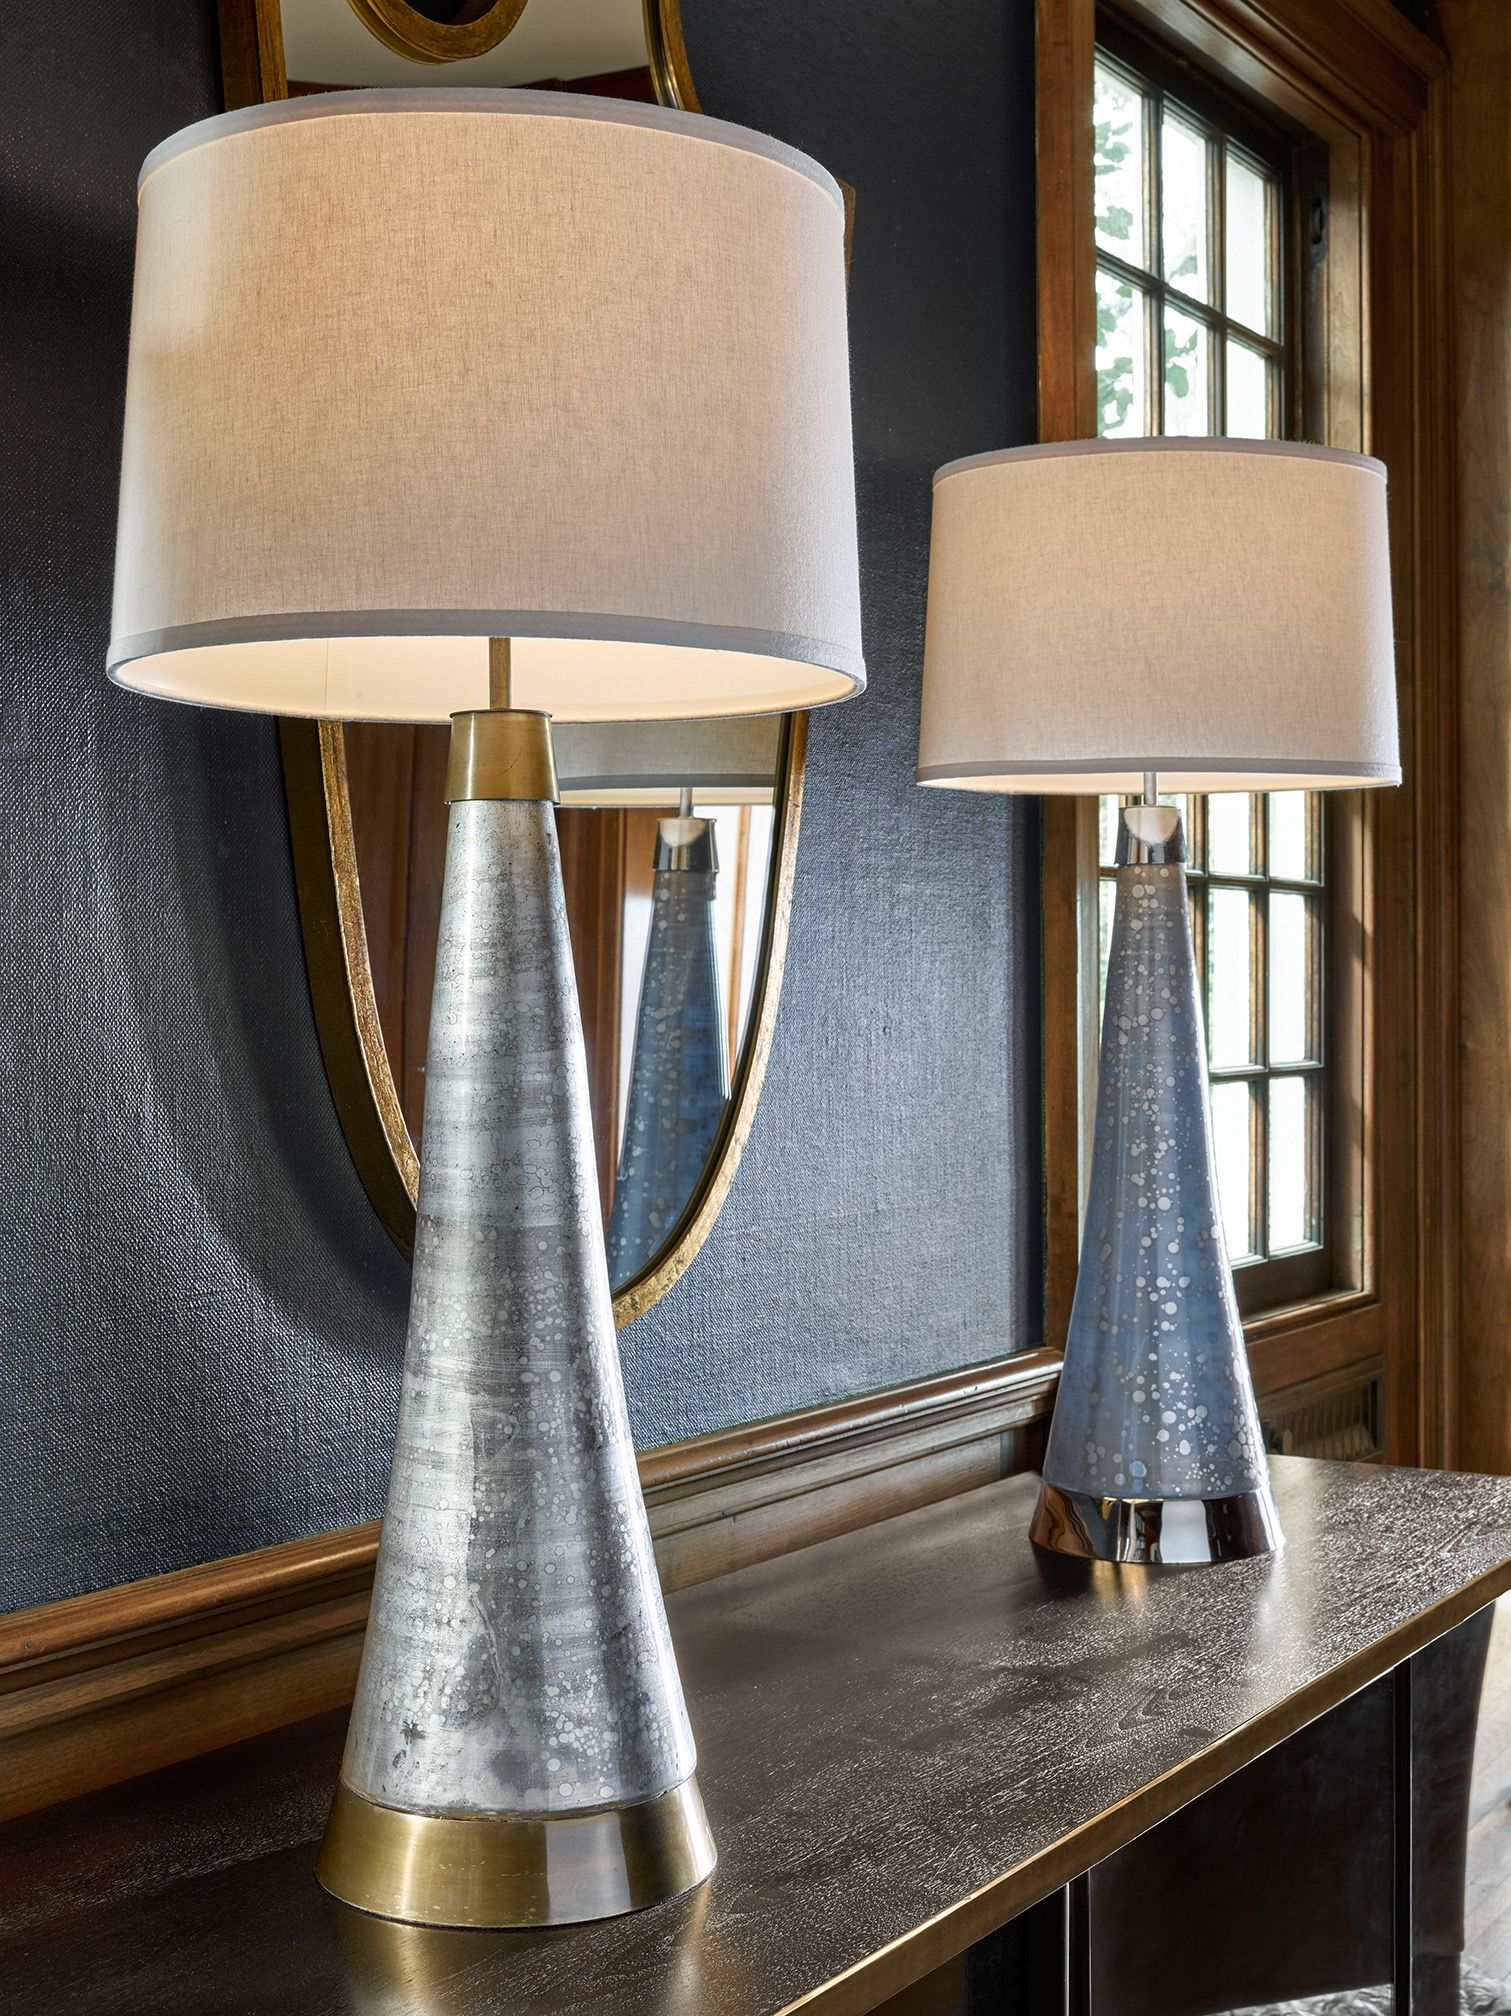 Blakley lamps in two finishes by mr brown london lookbook elle blakley lamps in two finishes by mr brown london lookbook elle decor geotapseo Choice Image